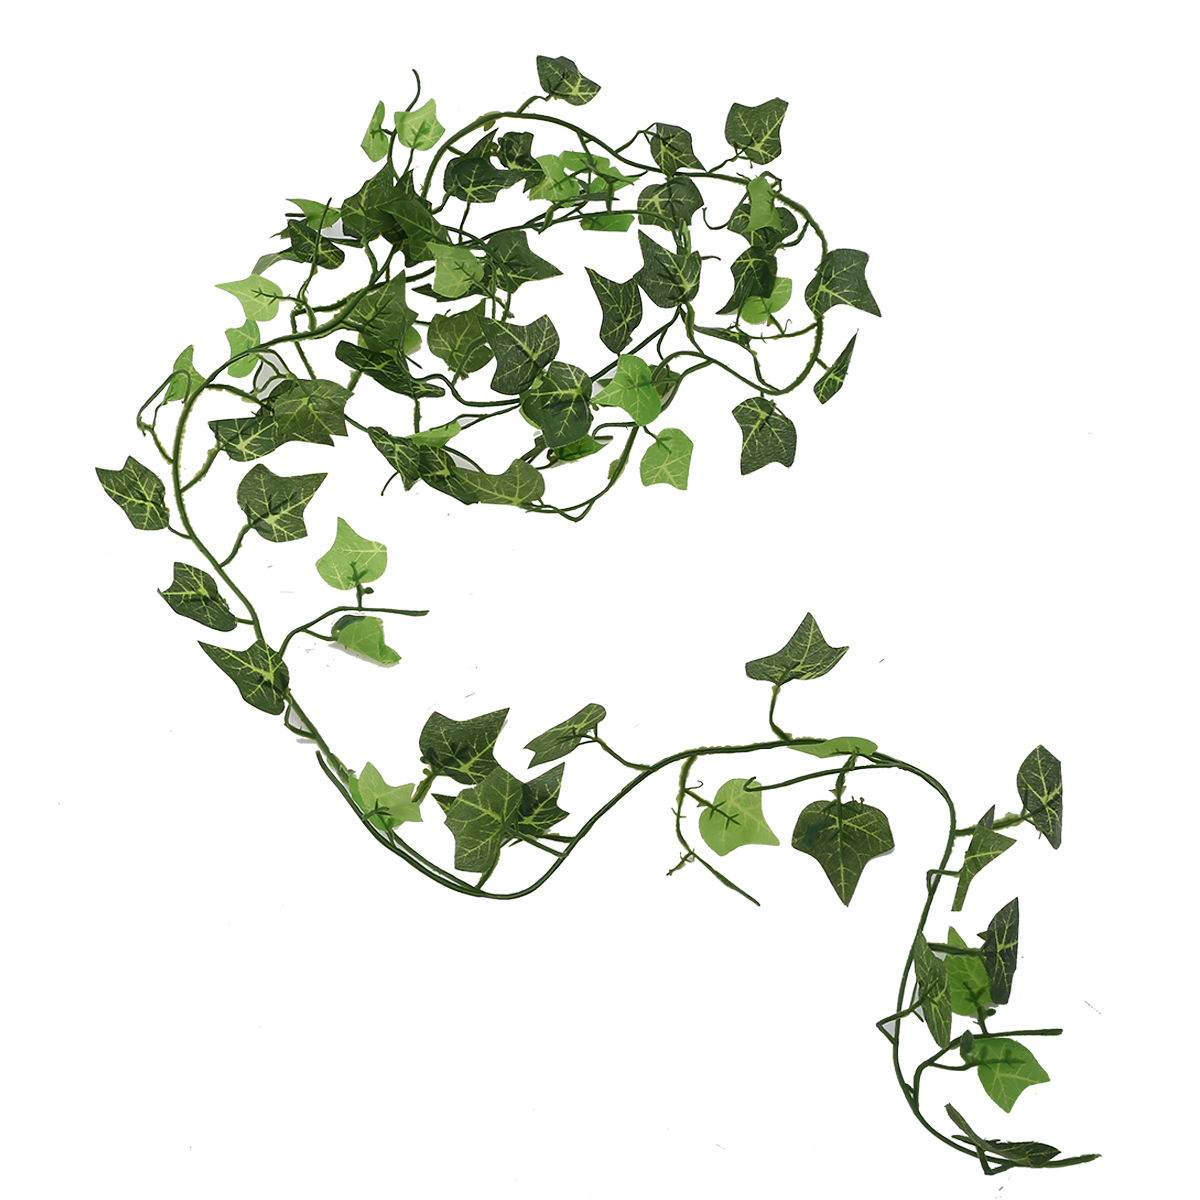 US $1.64 22% OFF|2.4m Artificial Ivy Vine Leaf Fake Sweet Foliage Garland Plant Creeper Green Ivy Wreath For Home Wedding Decor in Artificial & Dried